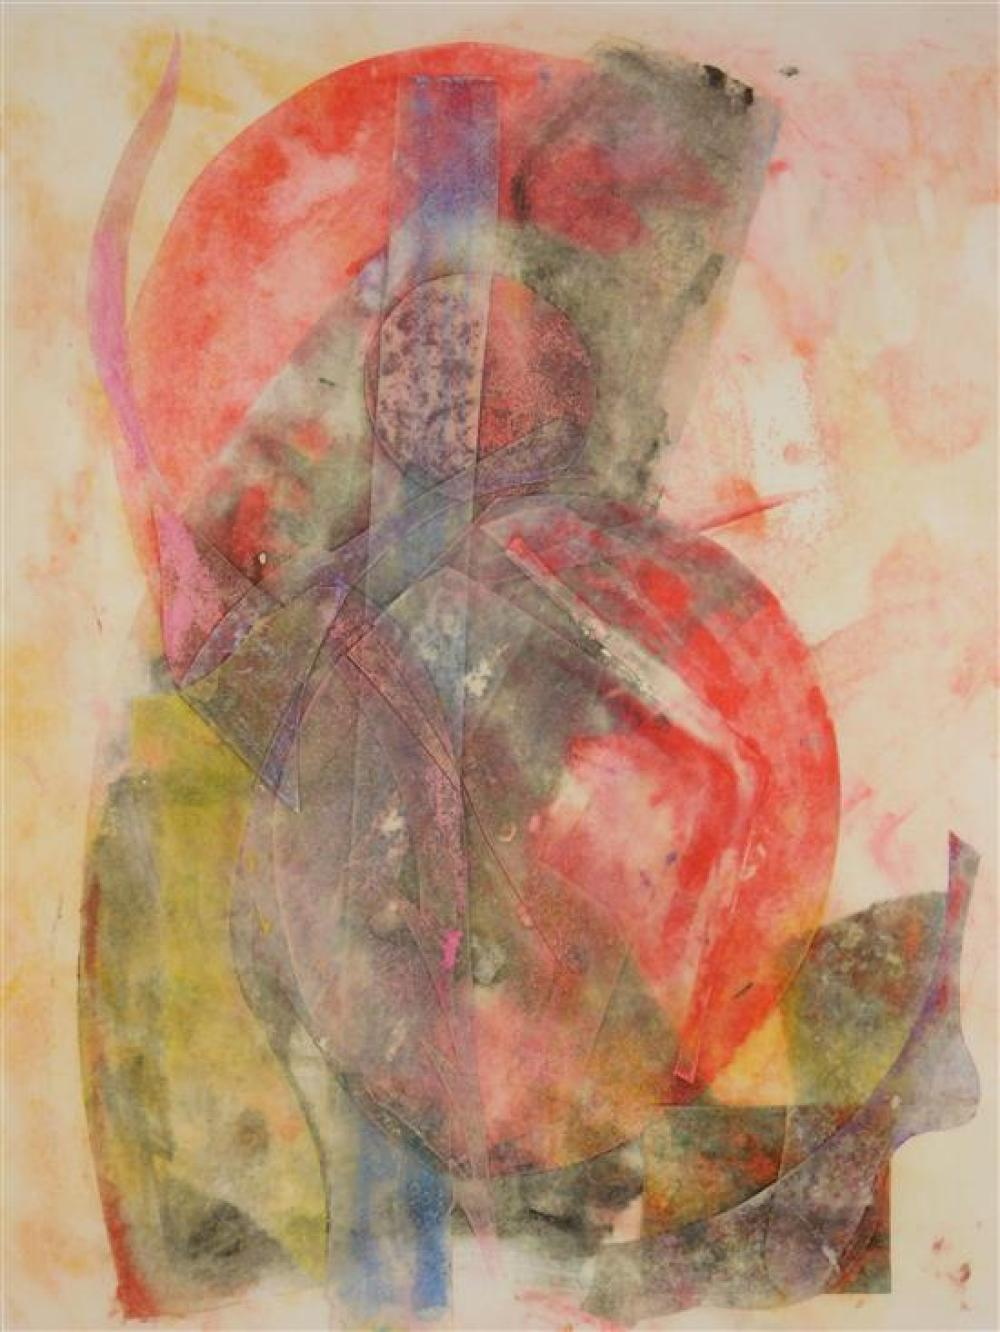 """Miklos Pogany (Connecticut, 1946), """"Sundays and Cybele"""", 1989, color monotype, abstract composition with overlapped shapes, various..."""